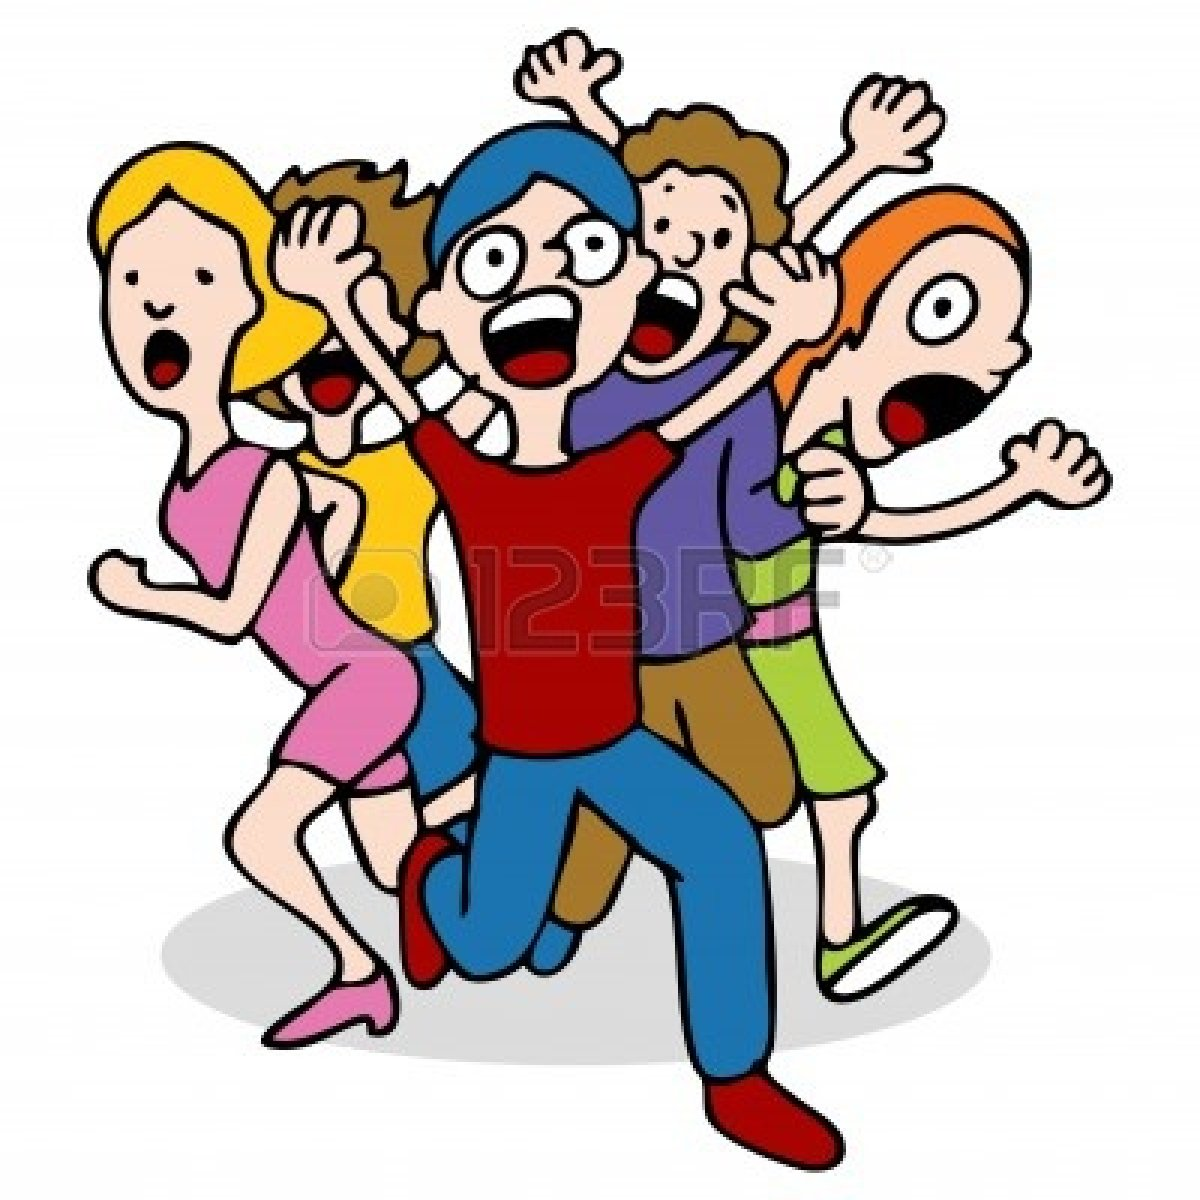 Crowd Of People Running Clipart | Clipart Panda - Free ...